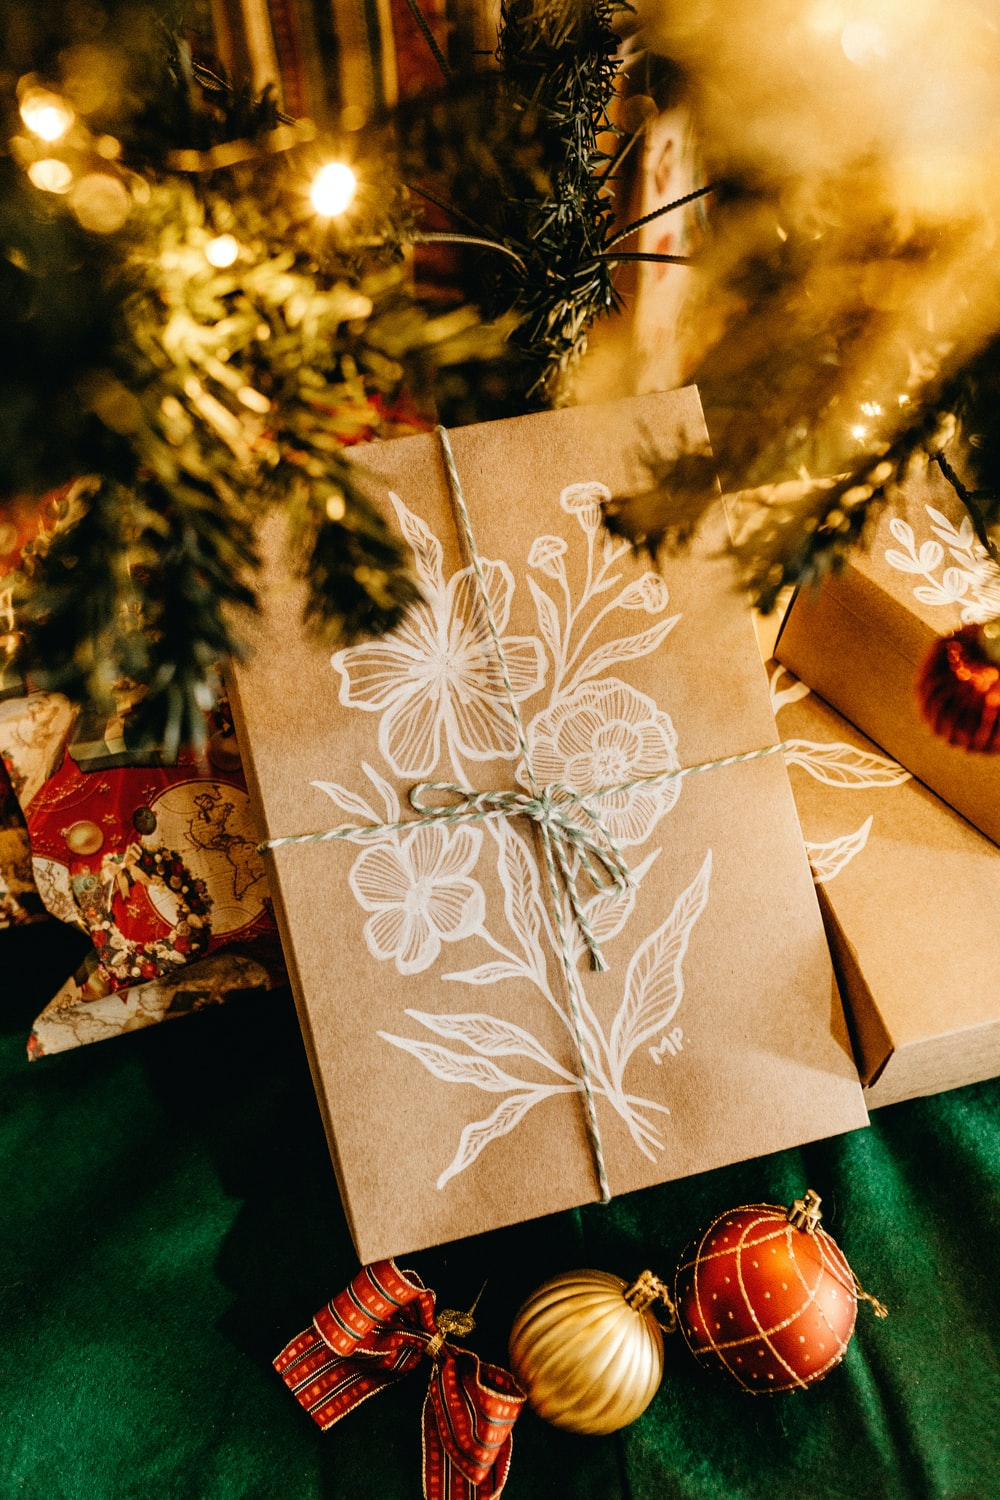 gift boxes under tree